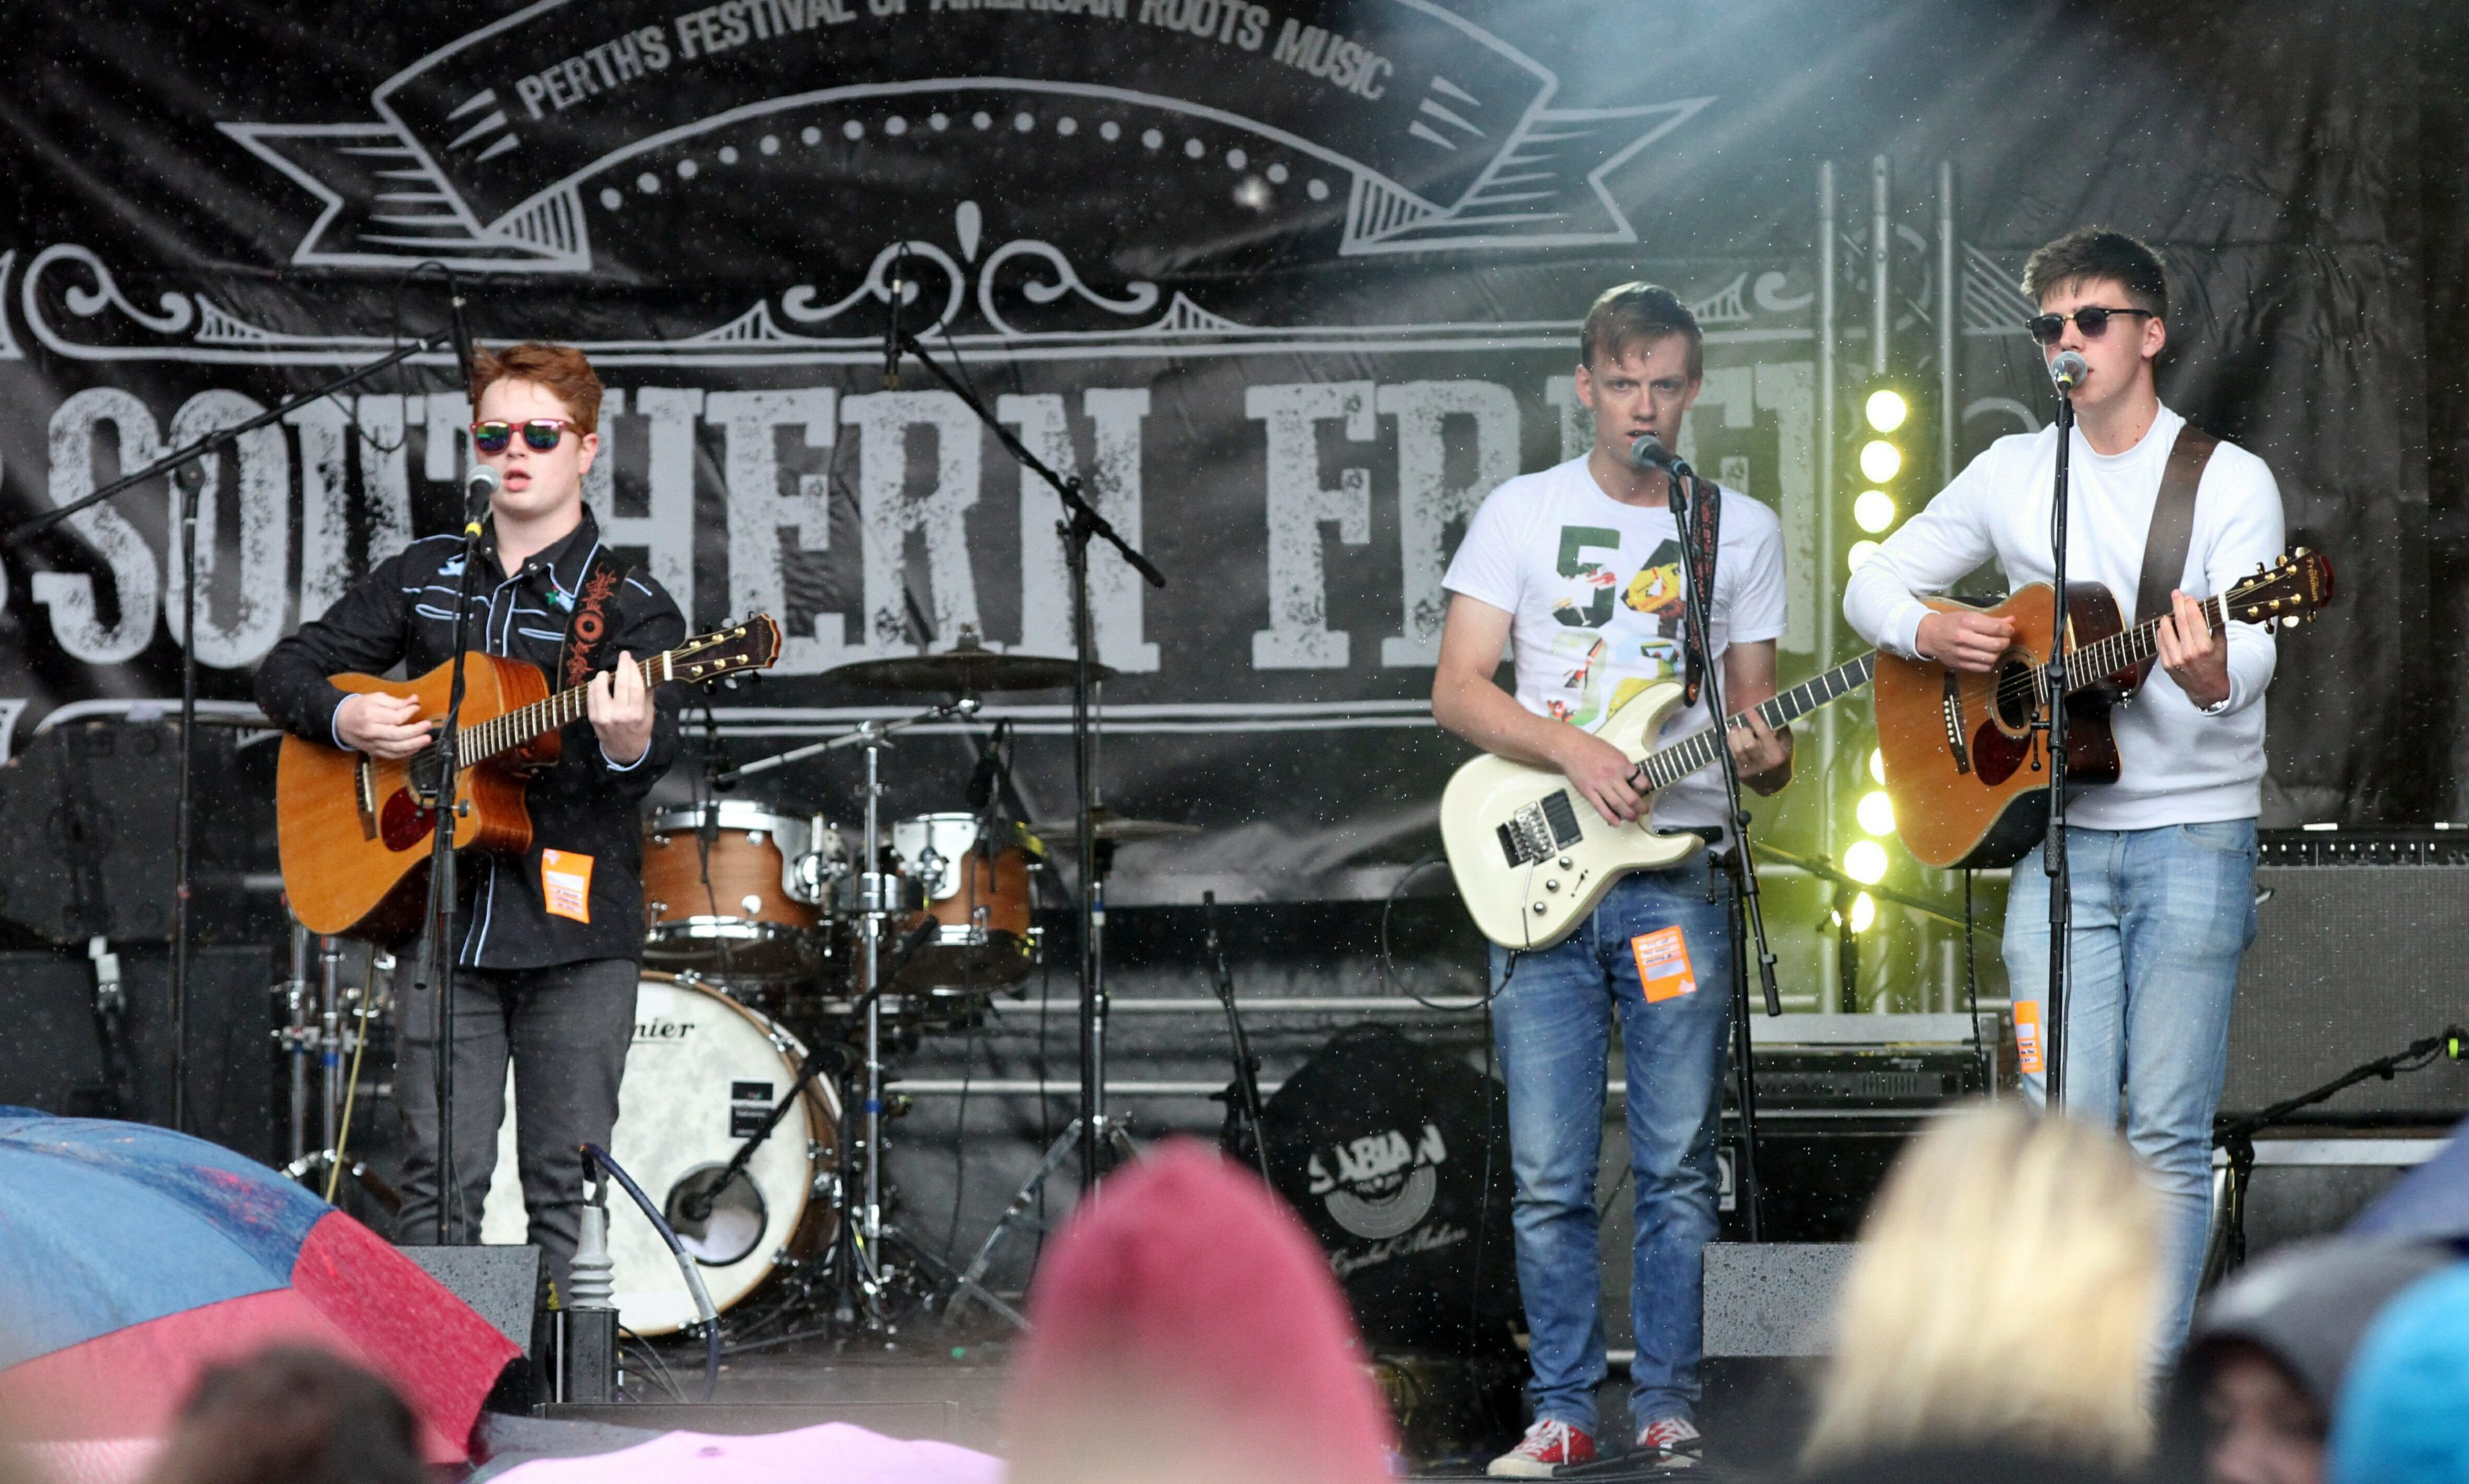 The outdoor stage proved a major draw at the 10th annual Southern Fried Festival